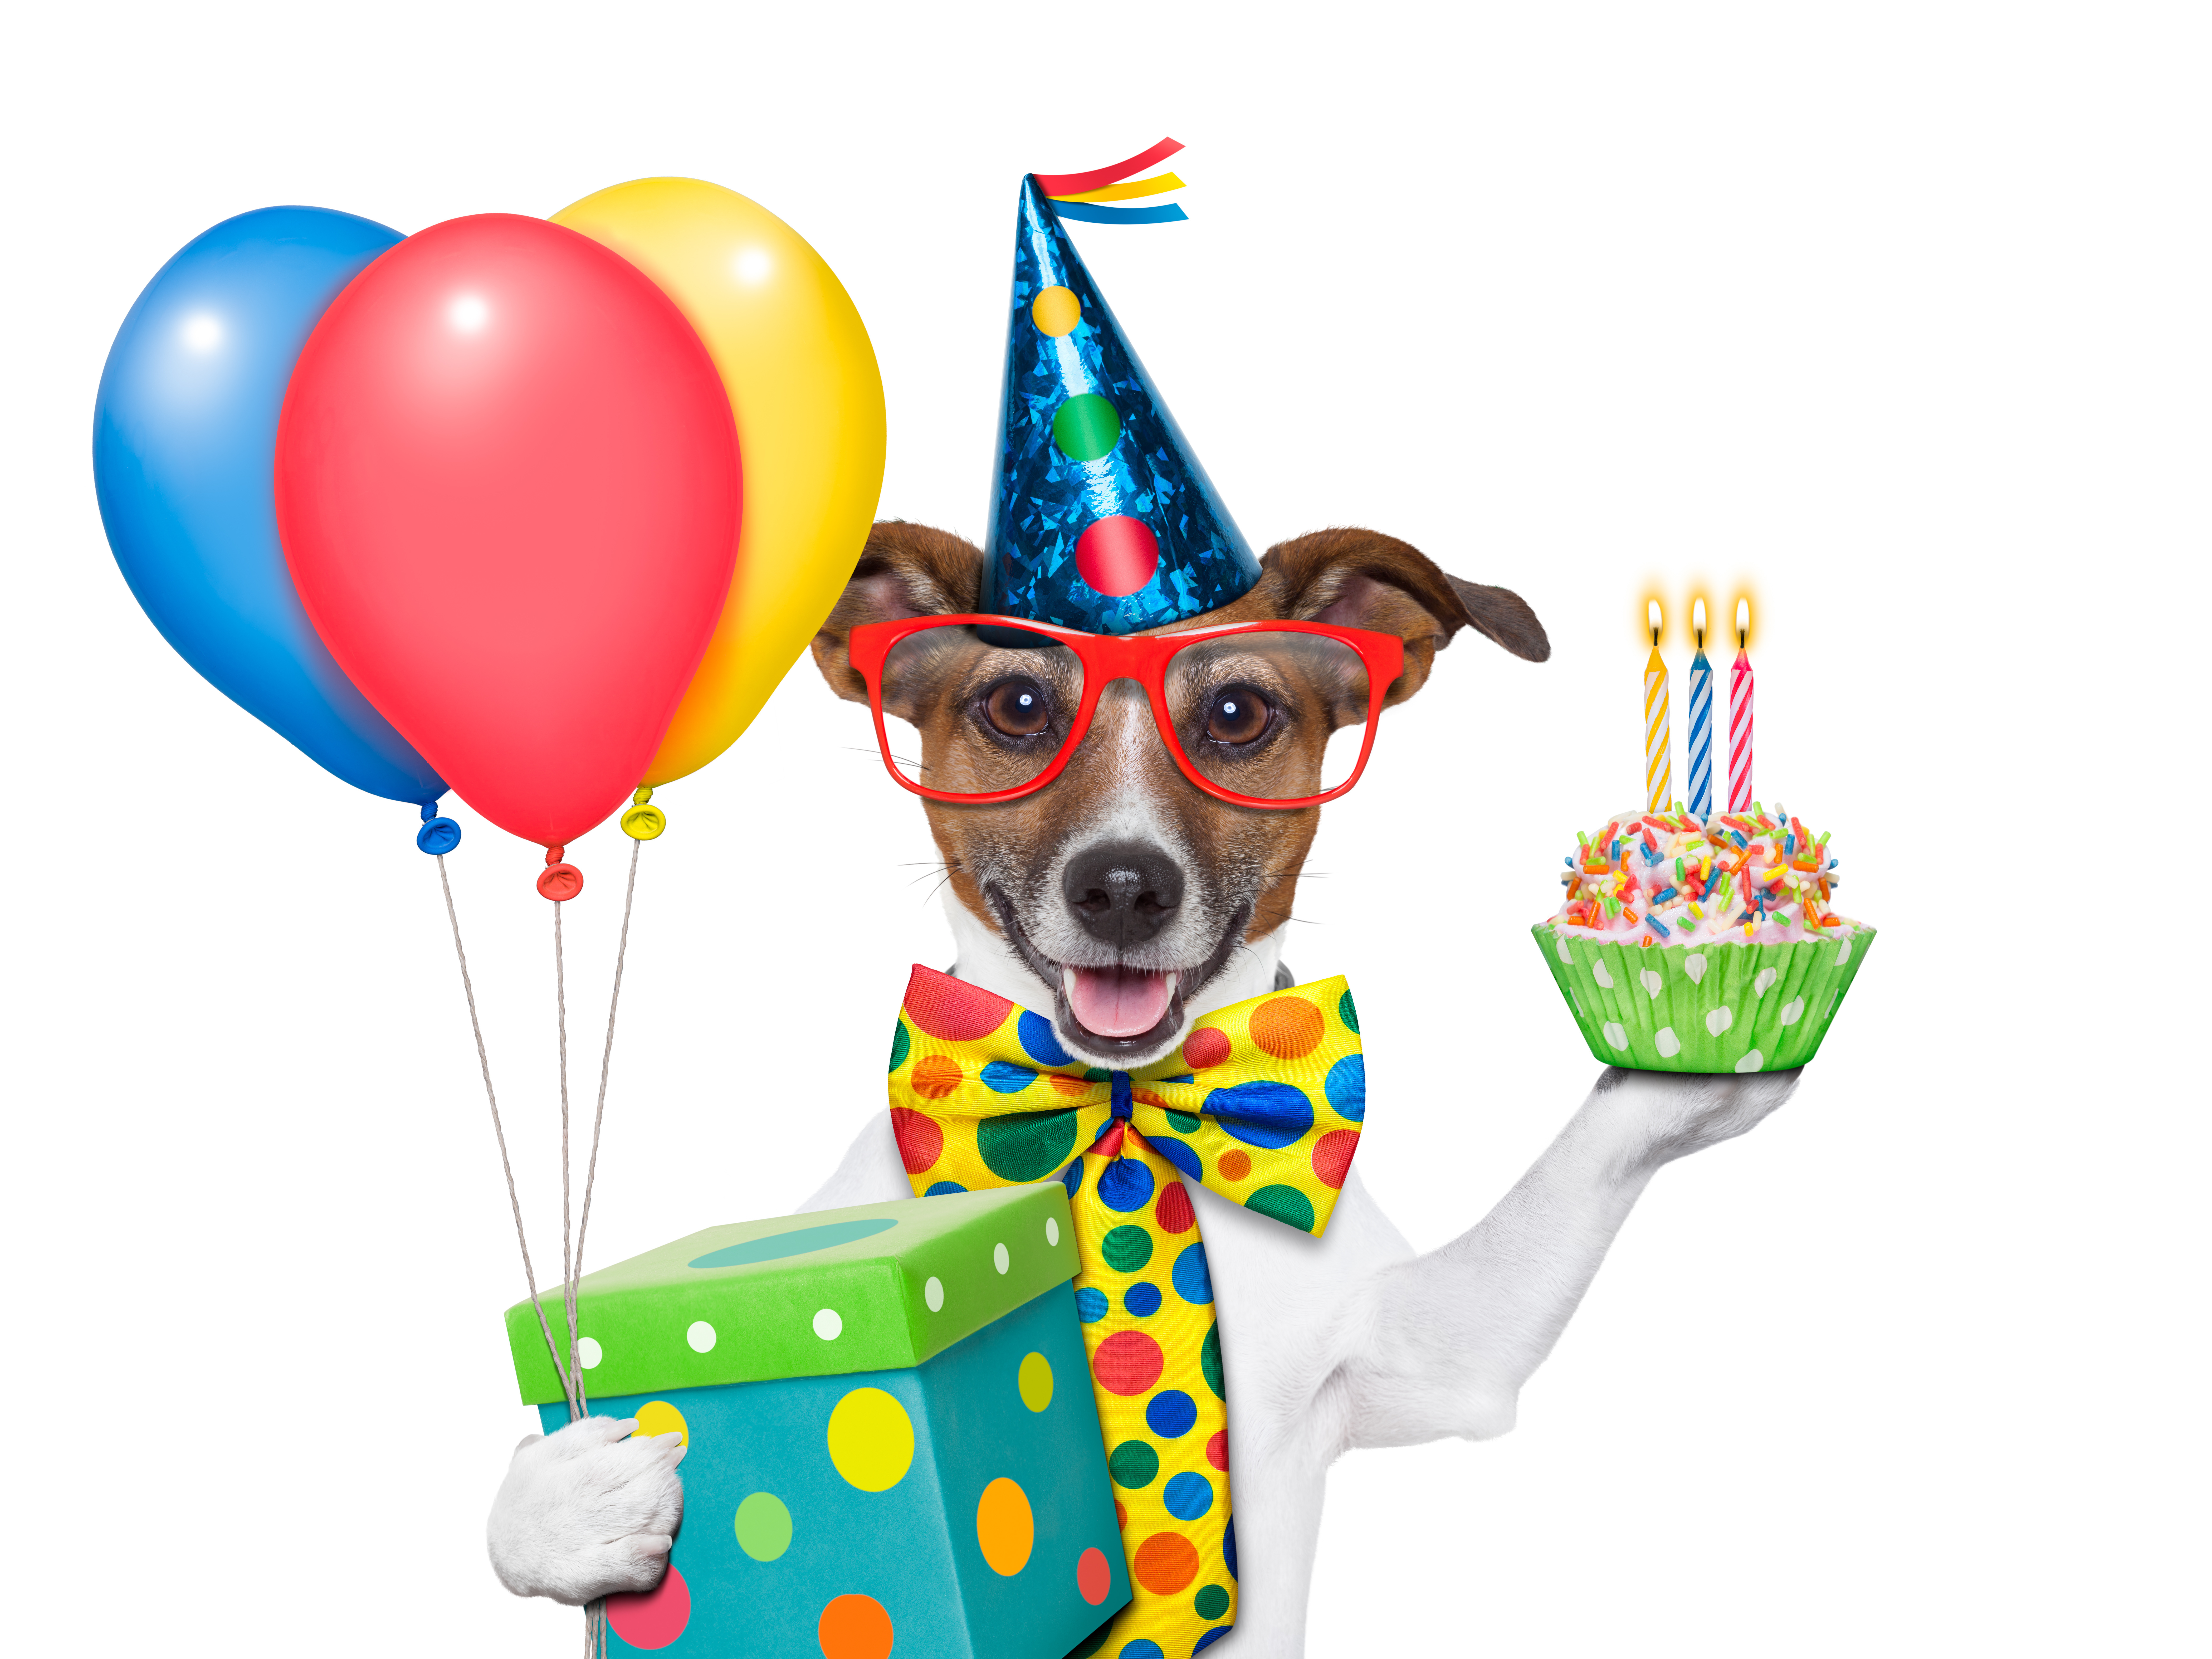 Dog's Birthday, Present and Balloons